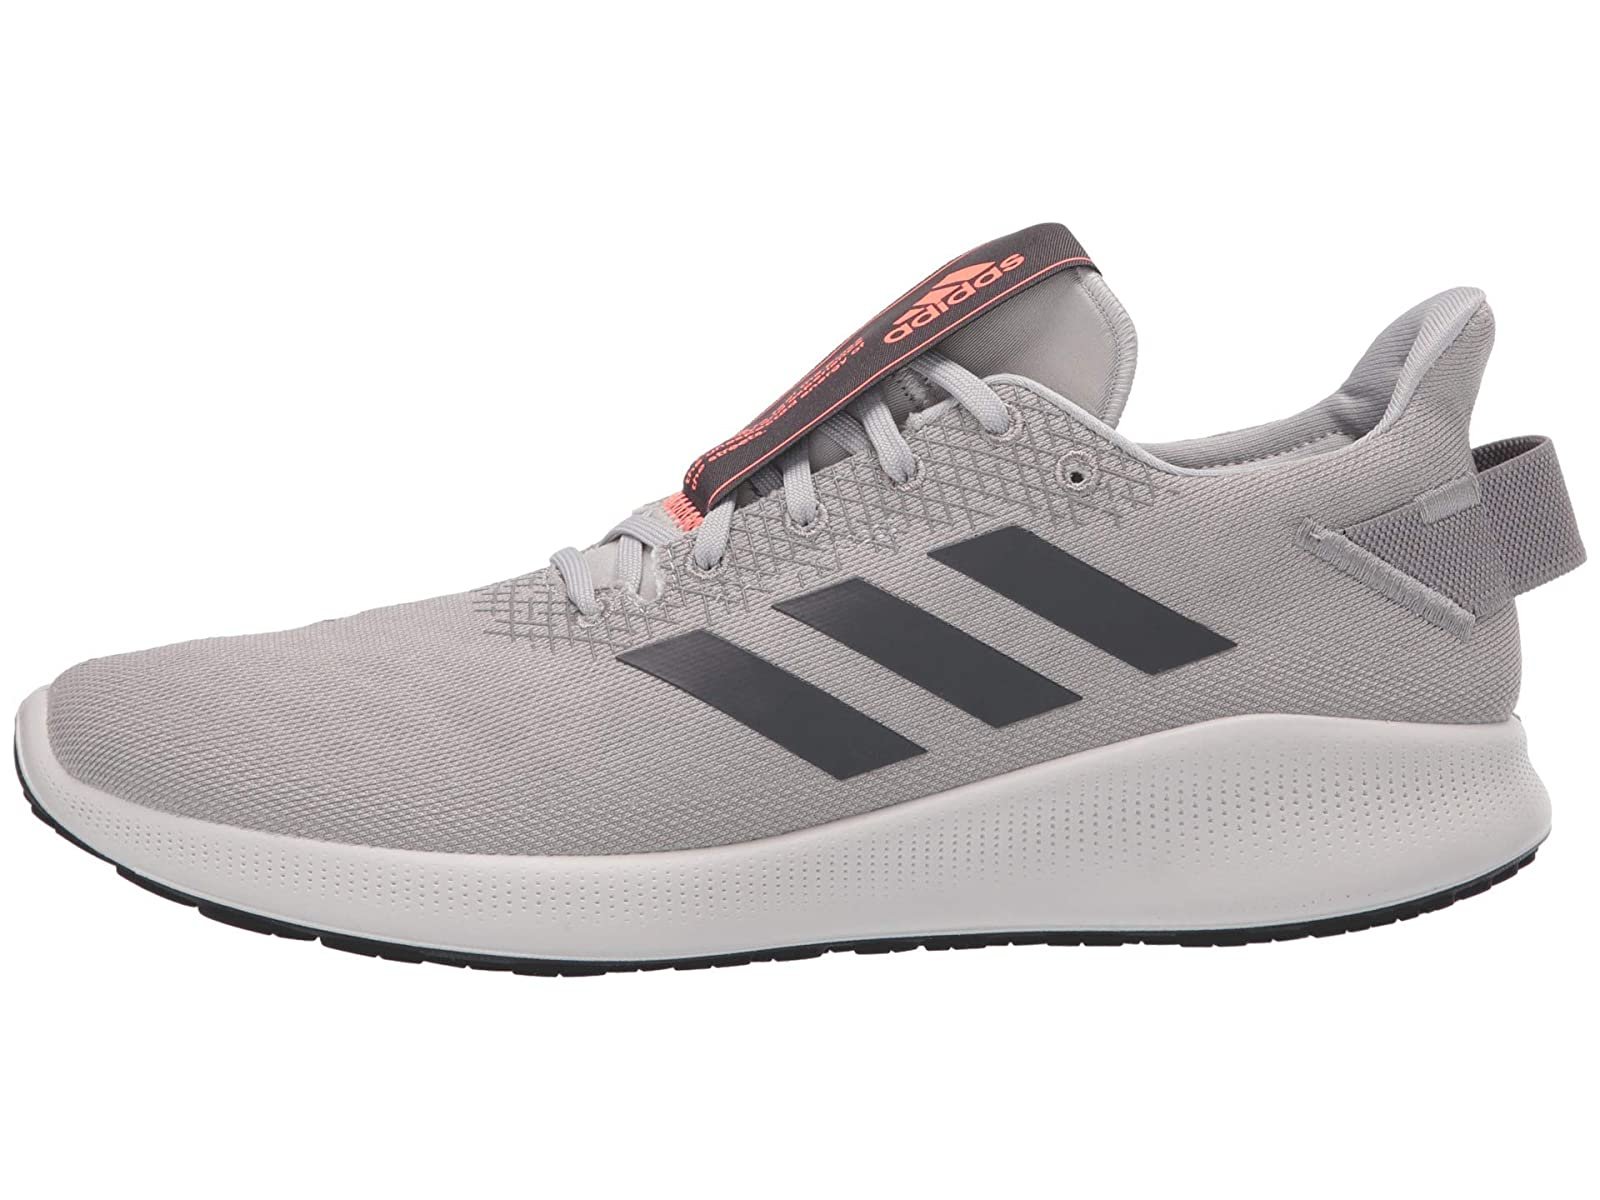 Man-039-s-Sneakers-amp-Athletic-Shoes-adidas-Running-SenseBOUNCE-Street thumbnail 12